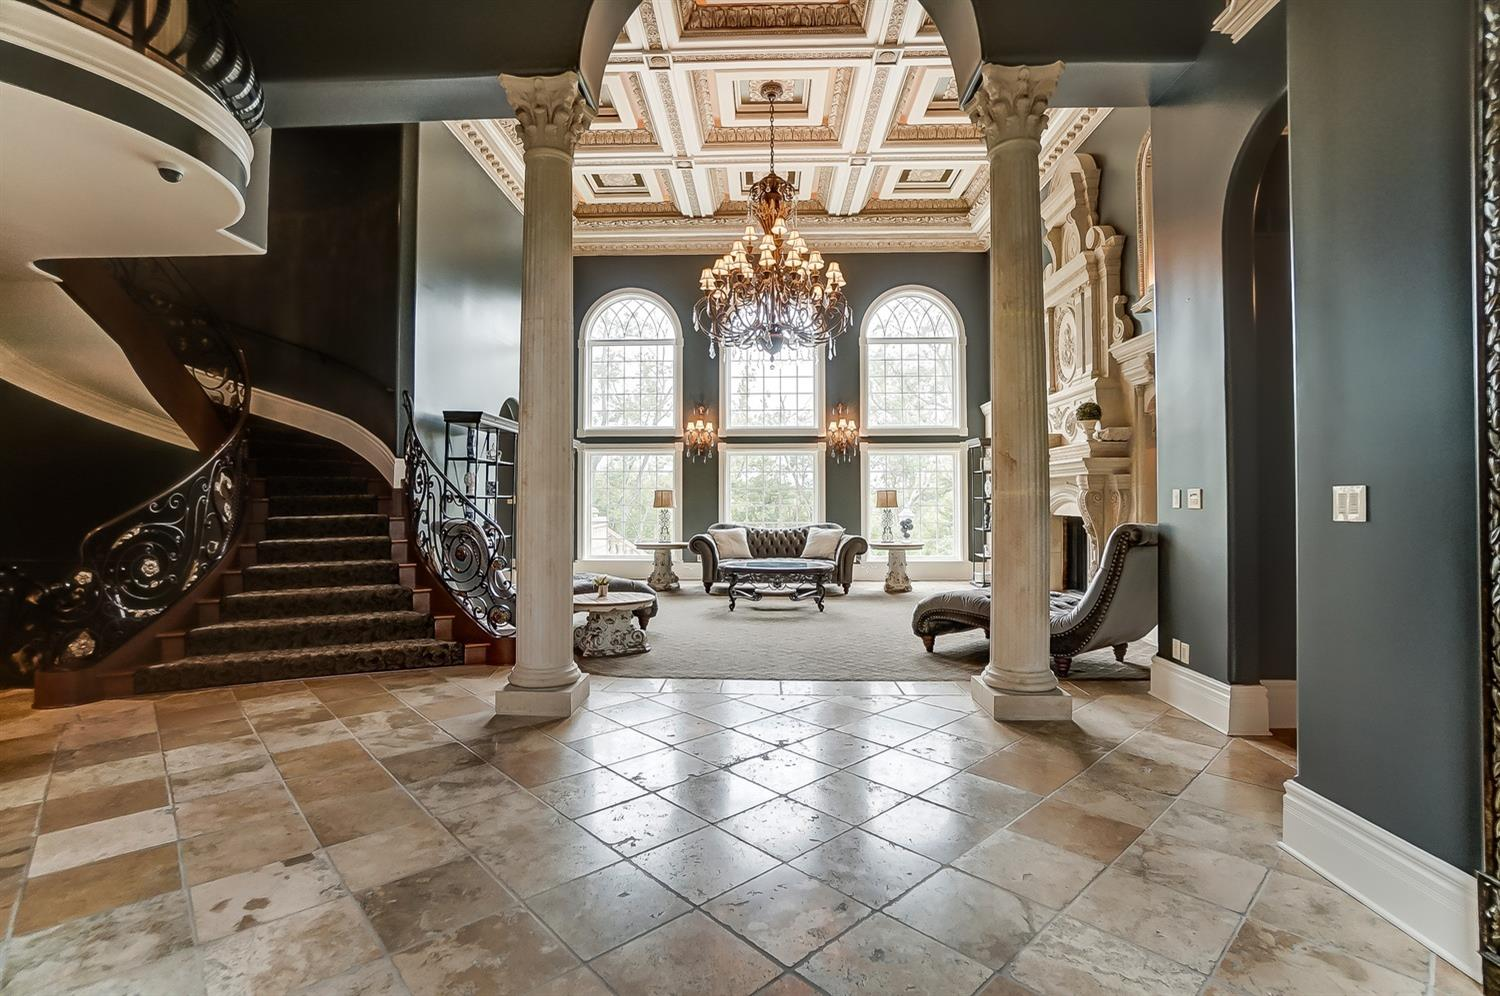 The living room boasts 22' high ceilings with beamed and recessed ceiling detail trimmed with ornate plaster moldings and an imported chandelier.